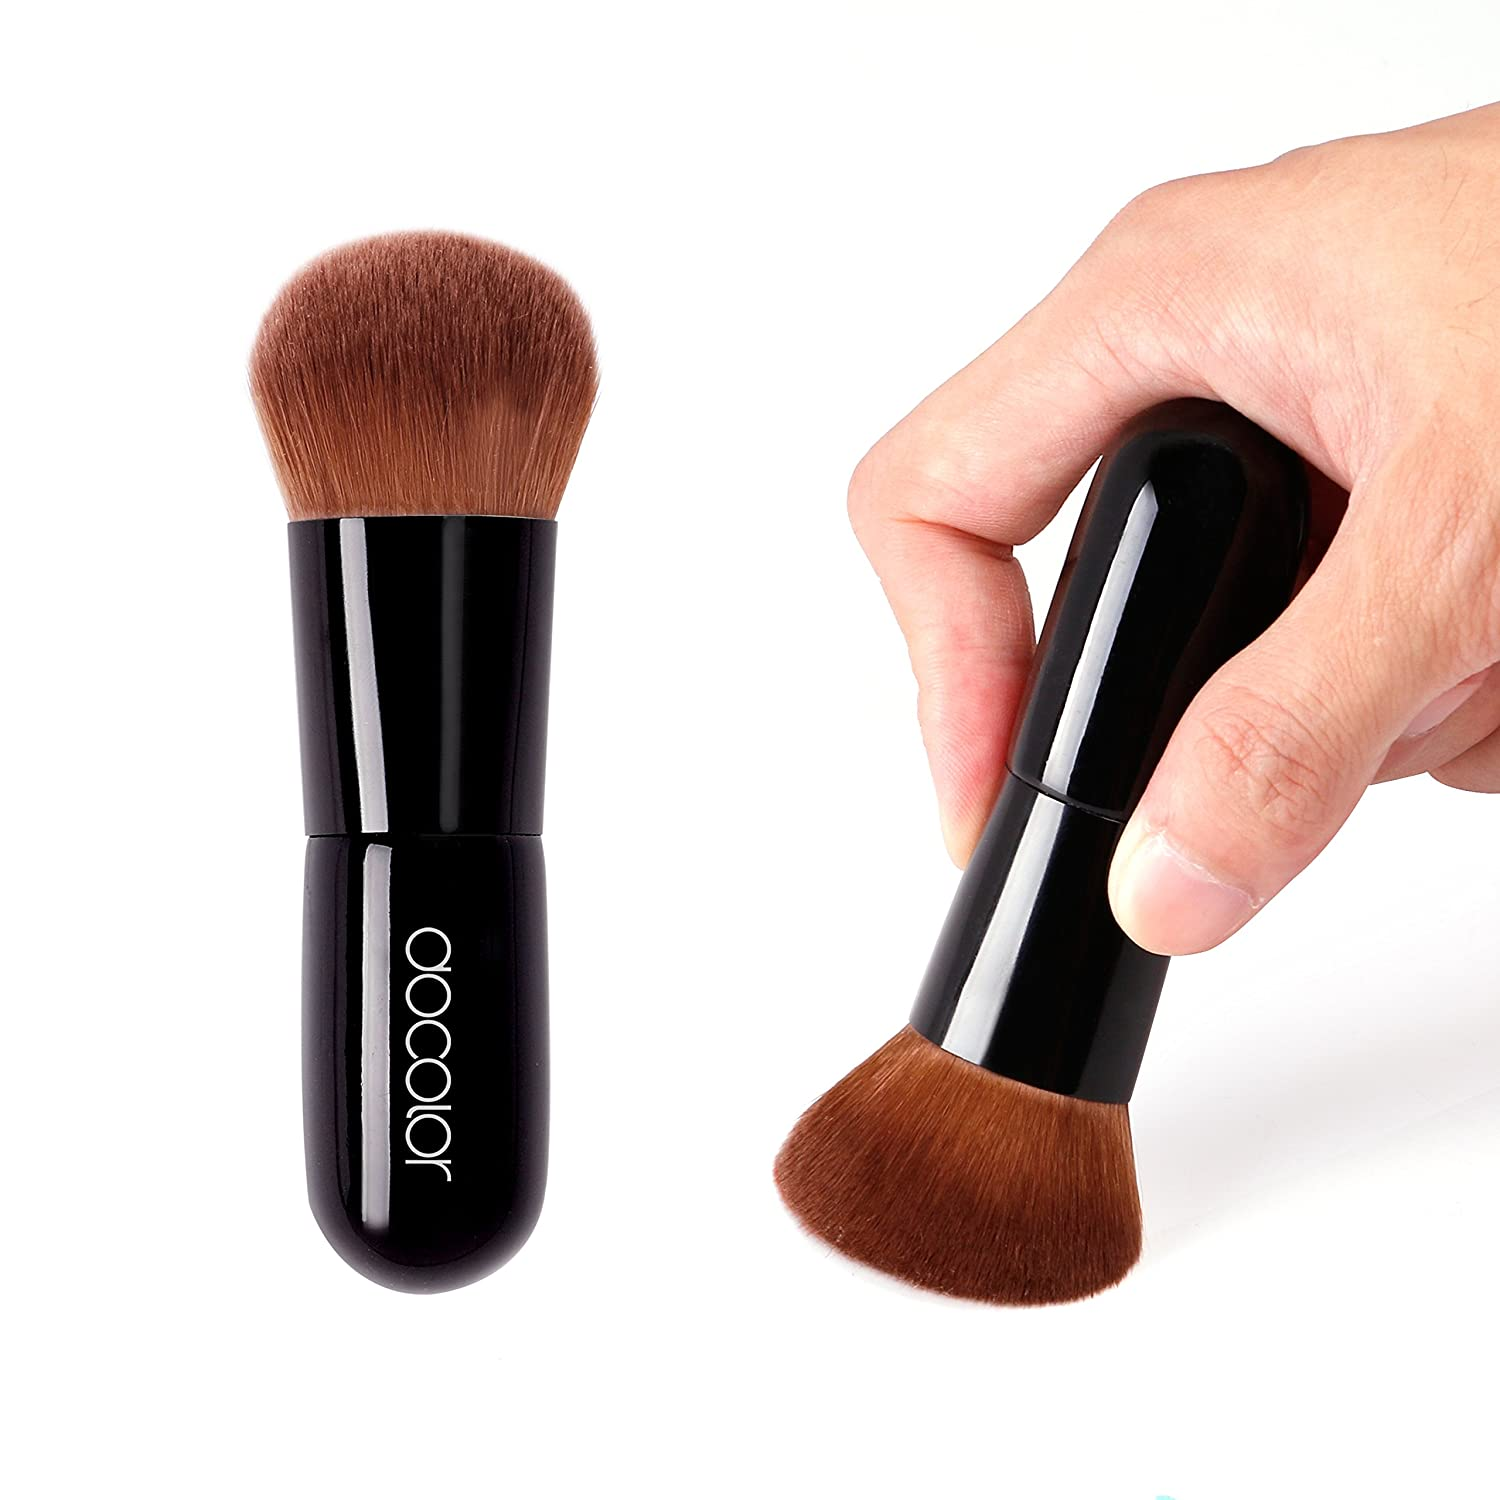 Docolor Kabuki Foundation Face Powder Brush Portable Makeup Cosmetic Tool(Black): Beauty